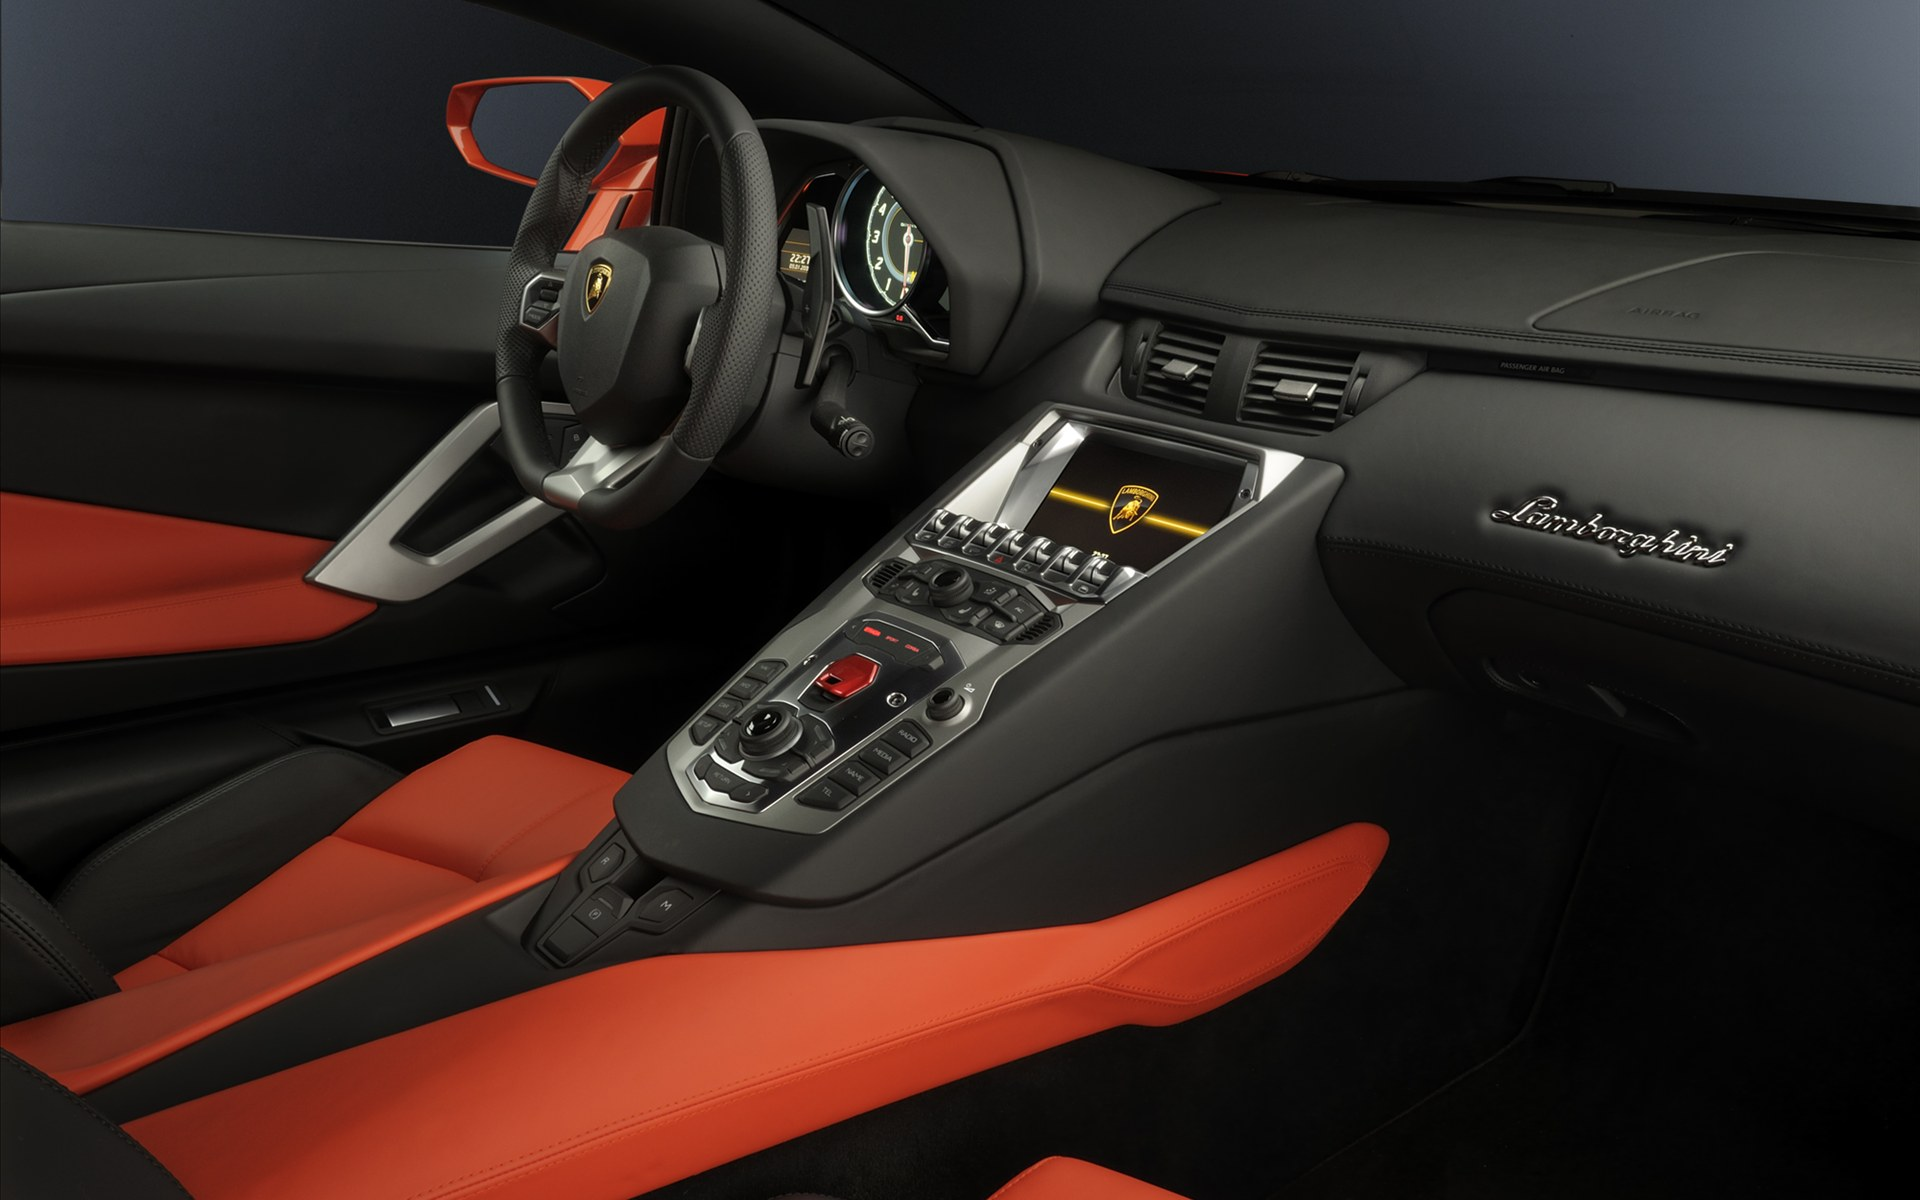 2011 Lamborghini Aventador Interior Wallpaper Hd Car Wallpapers